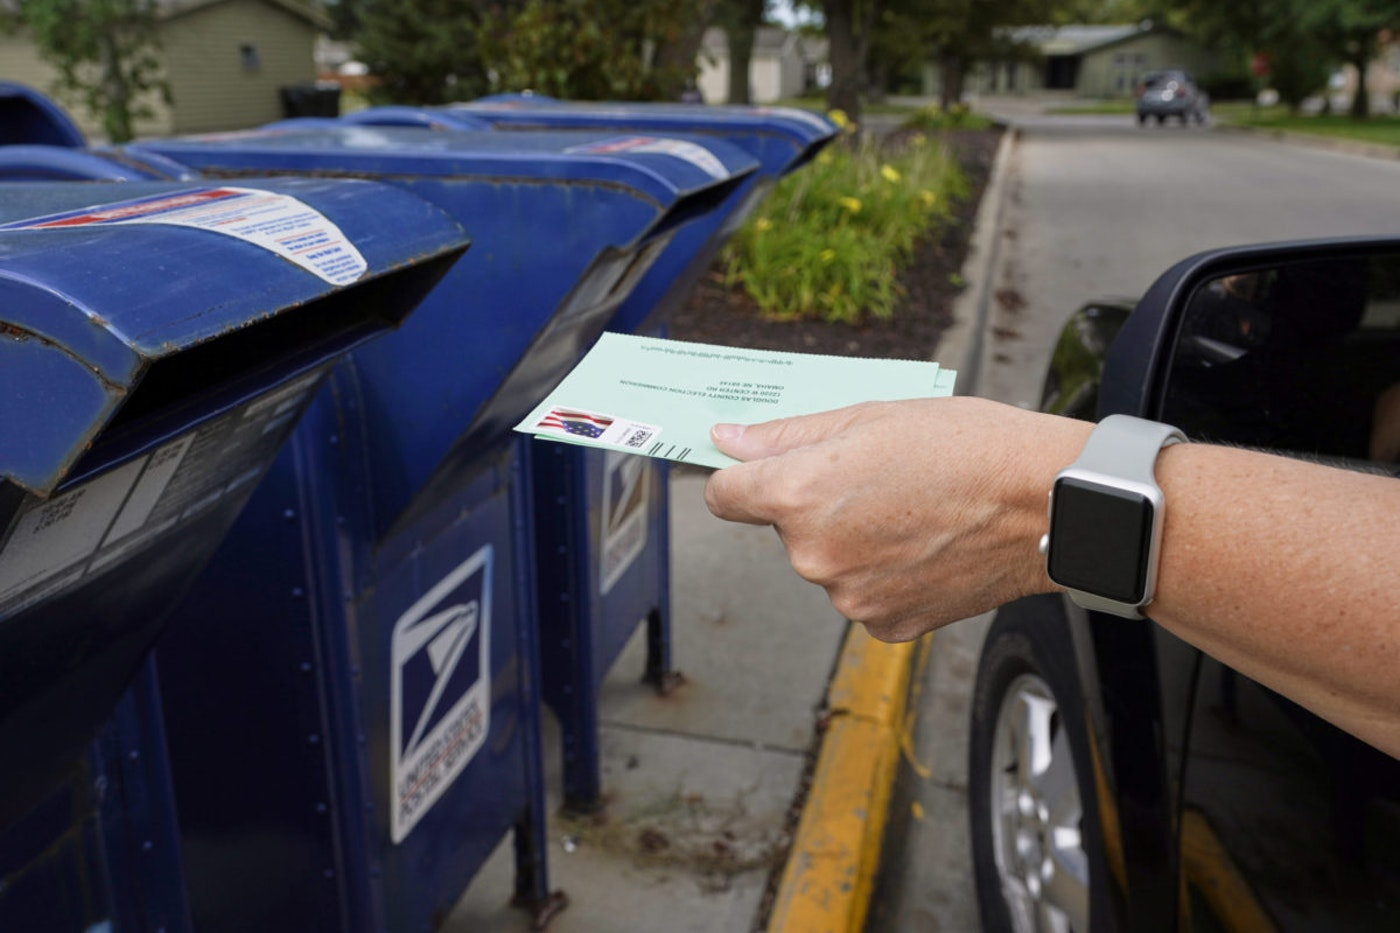 In this Tuesday, Aug. 18, 2020, file photo, a person drops applications for mail-in-ballots into a mailbox in Omaha, Neb. Data obtained by The Associated Press shows Postal Service districts across the nation are missing the agency's own standards for on-time delivery as millions of Americans prepare to vote by mail. (AP Photo/Nati Harnik, File)